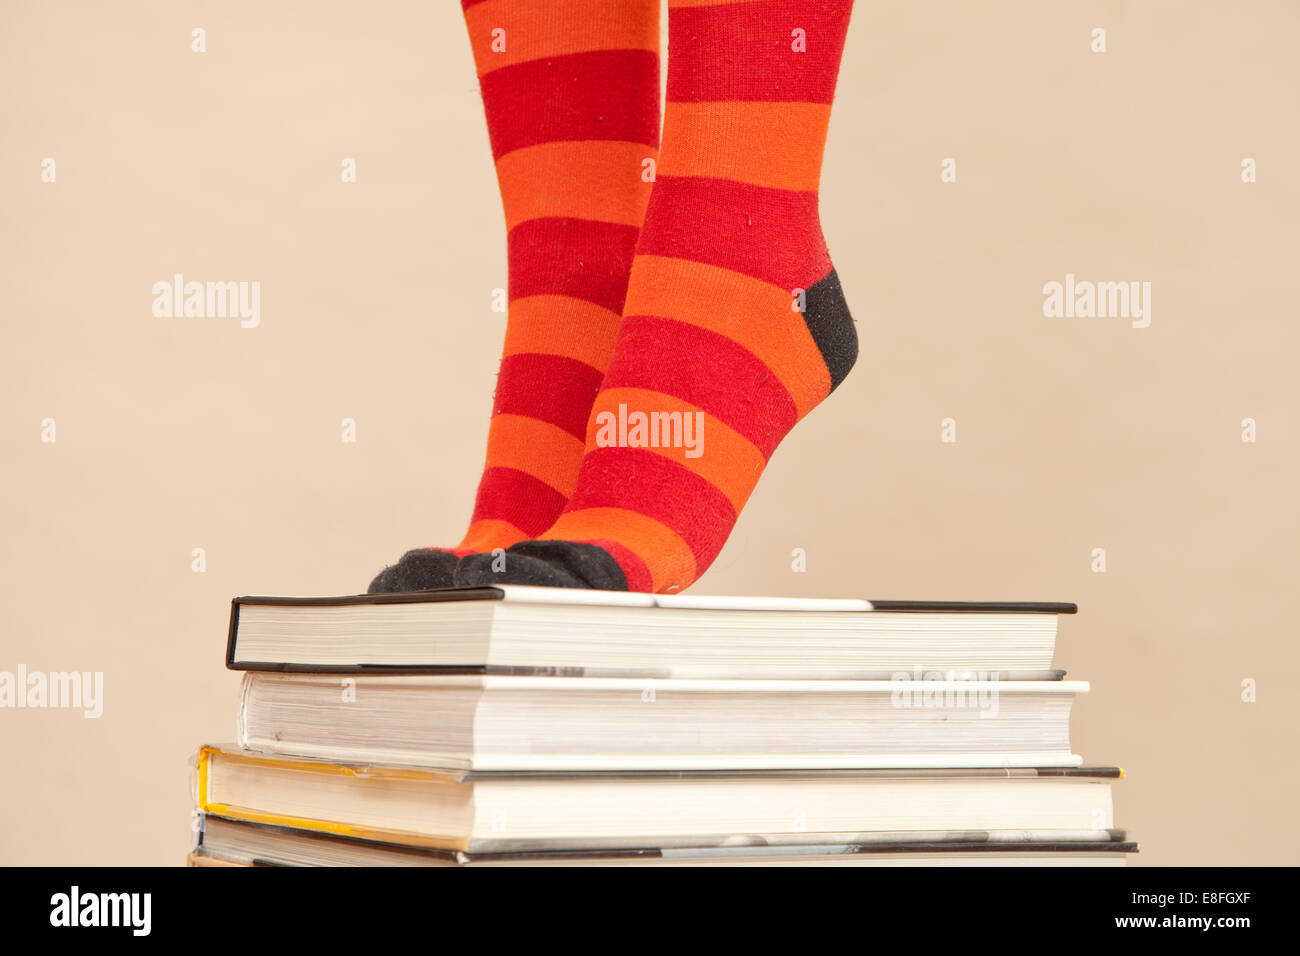 Woman's Feet in stripy socks standing on stack of books - Stock Image